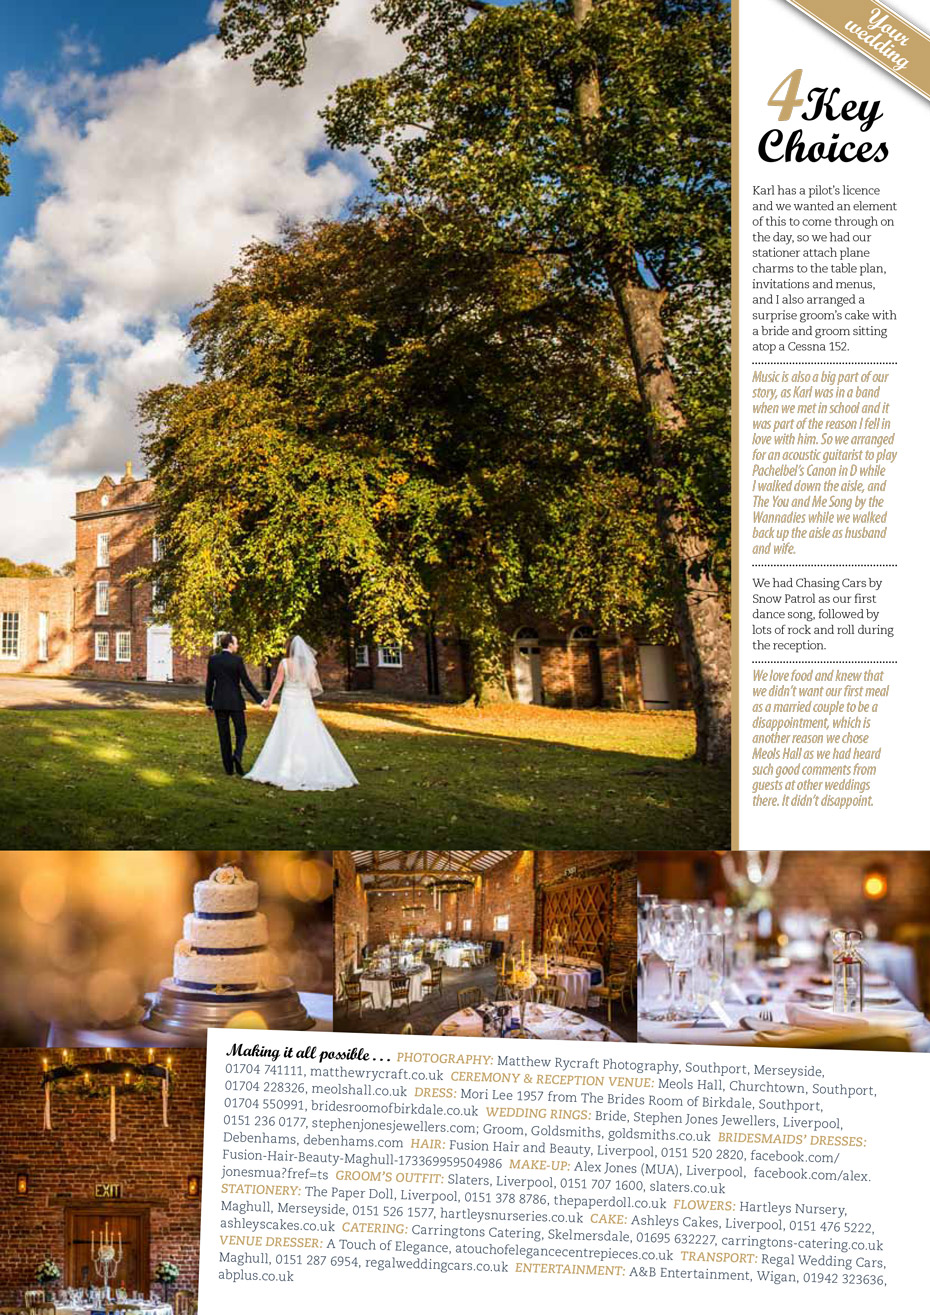 wedding cakes southport merseyside publised in lancashire magazine matthew rycraft 25497